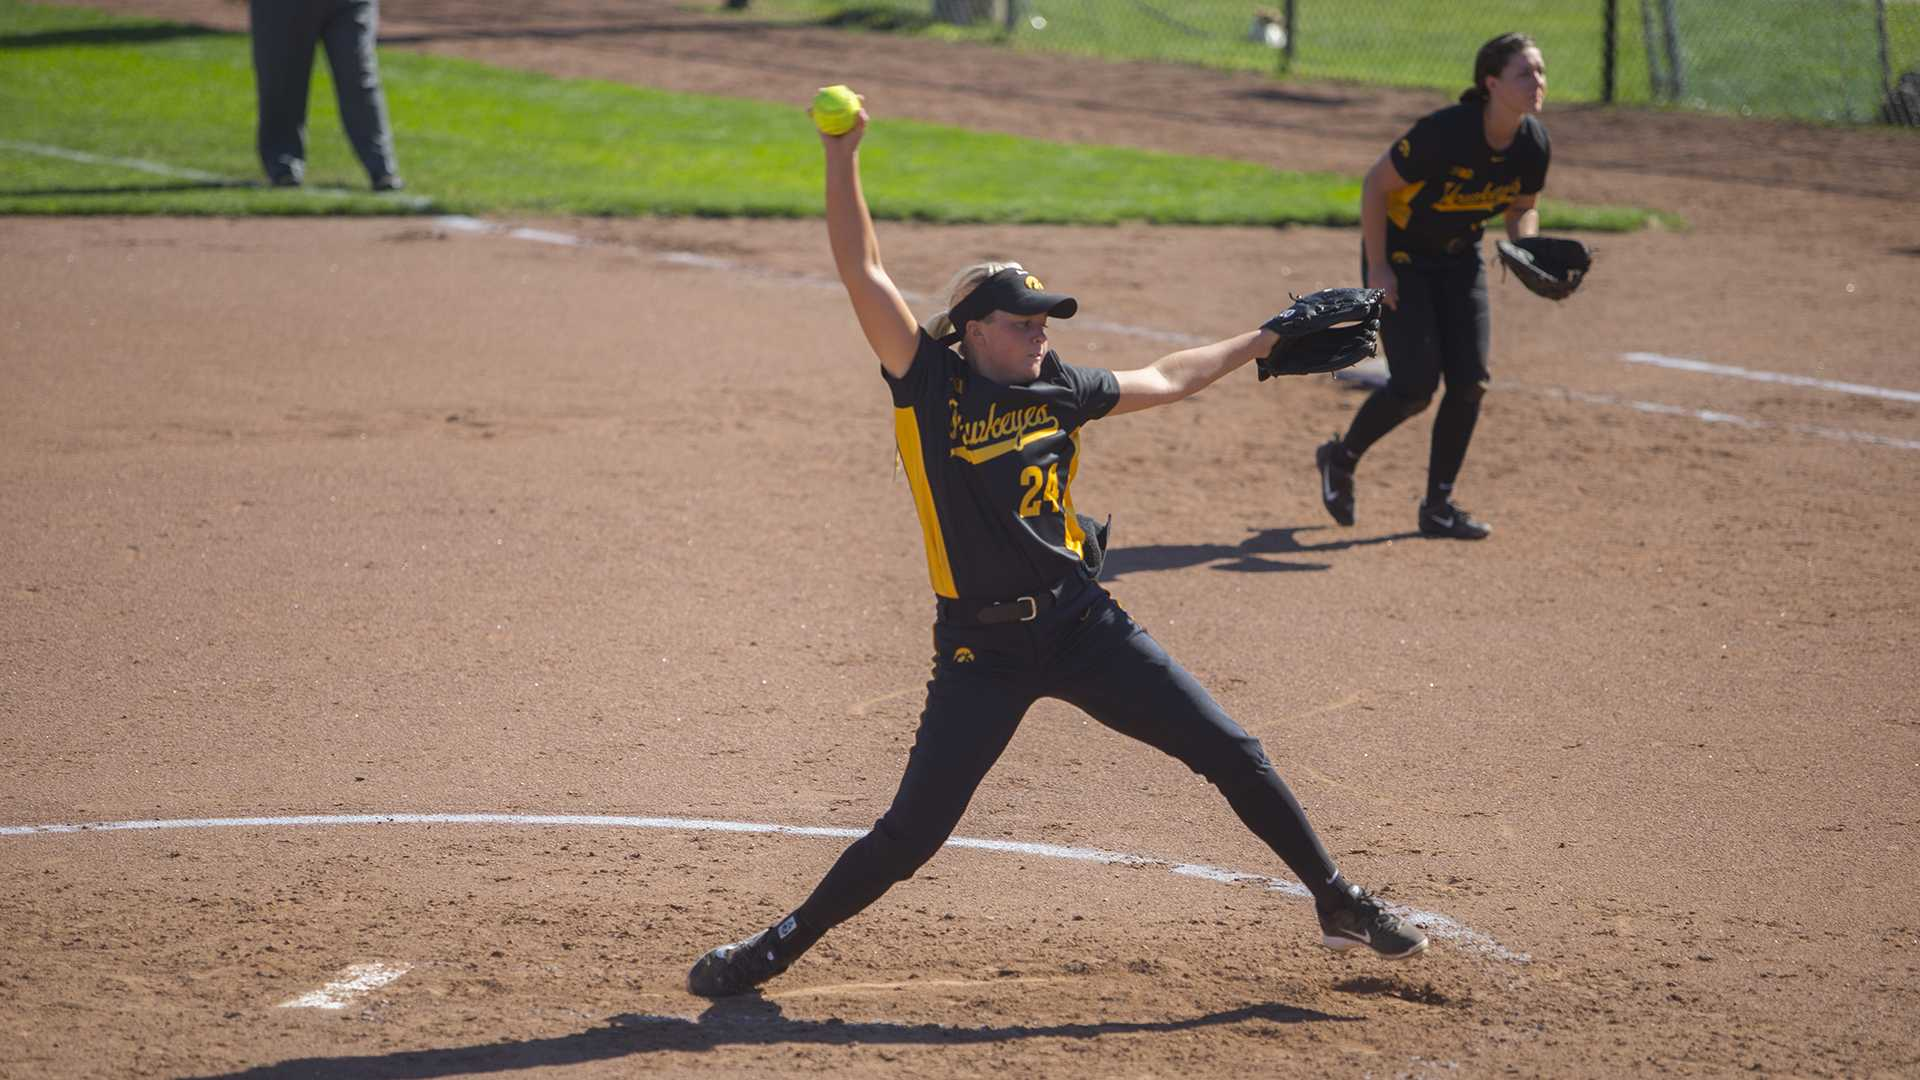 Iowa's Kenzie Ihle pitches during the last Fall Ball softball game against Northern Illinois at Pearl Field on Sunday, Oct. 8, 2017. The Huskies defeated the Hawkeyes, 9-2. (Lily Smith/The Daily Iowan)